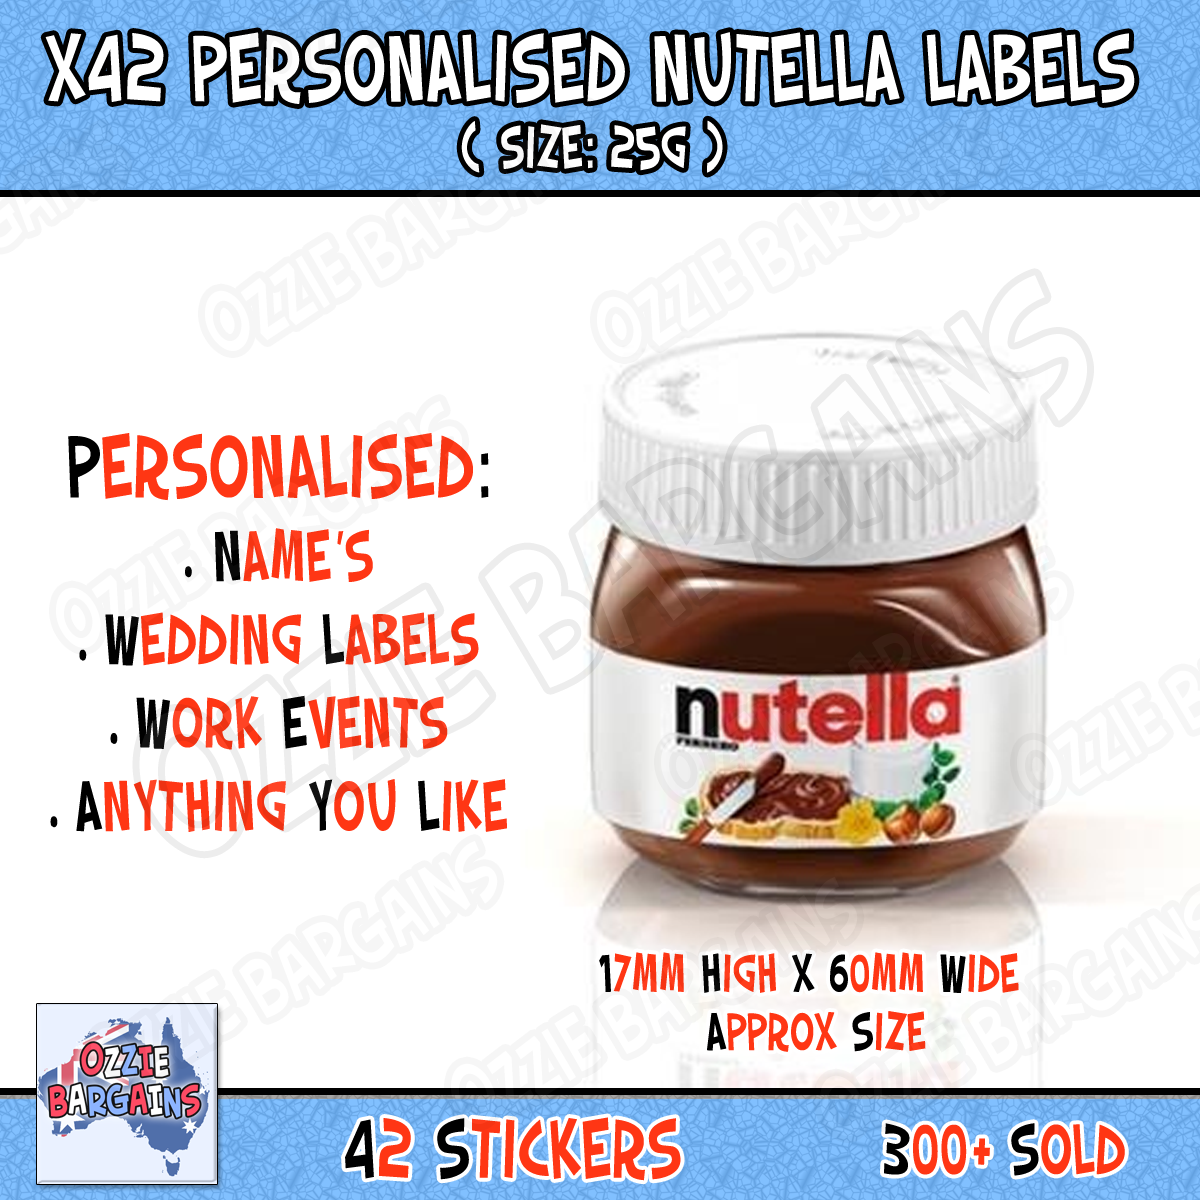 Details about x42 nutella personalised nutella labels make your own label 25g